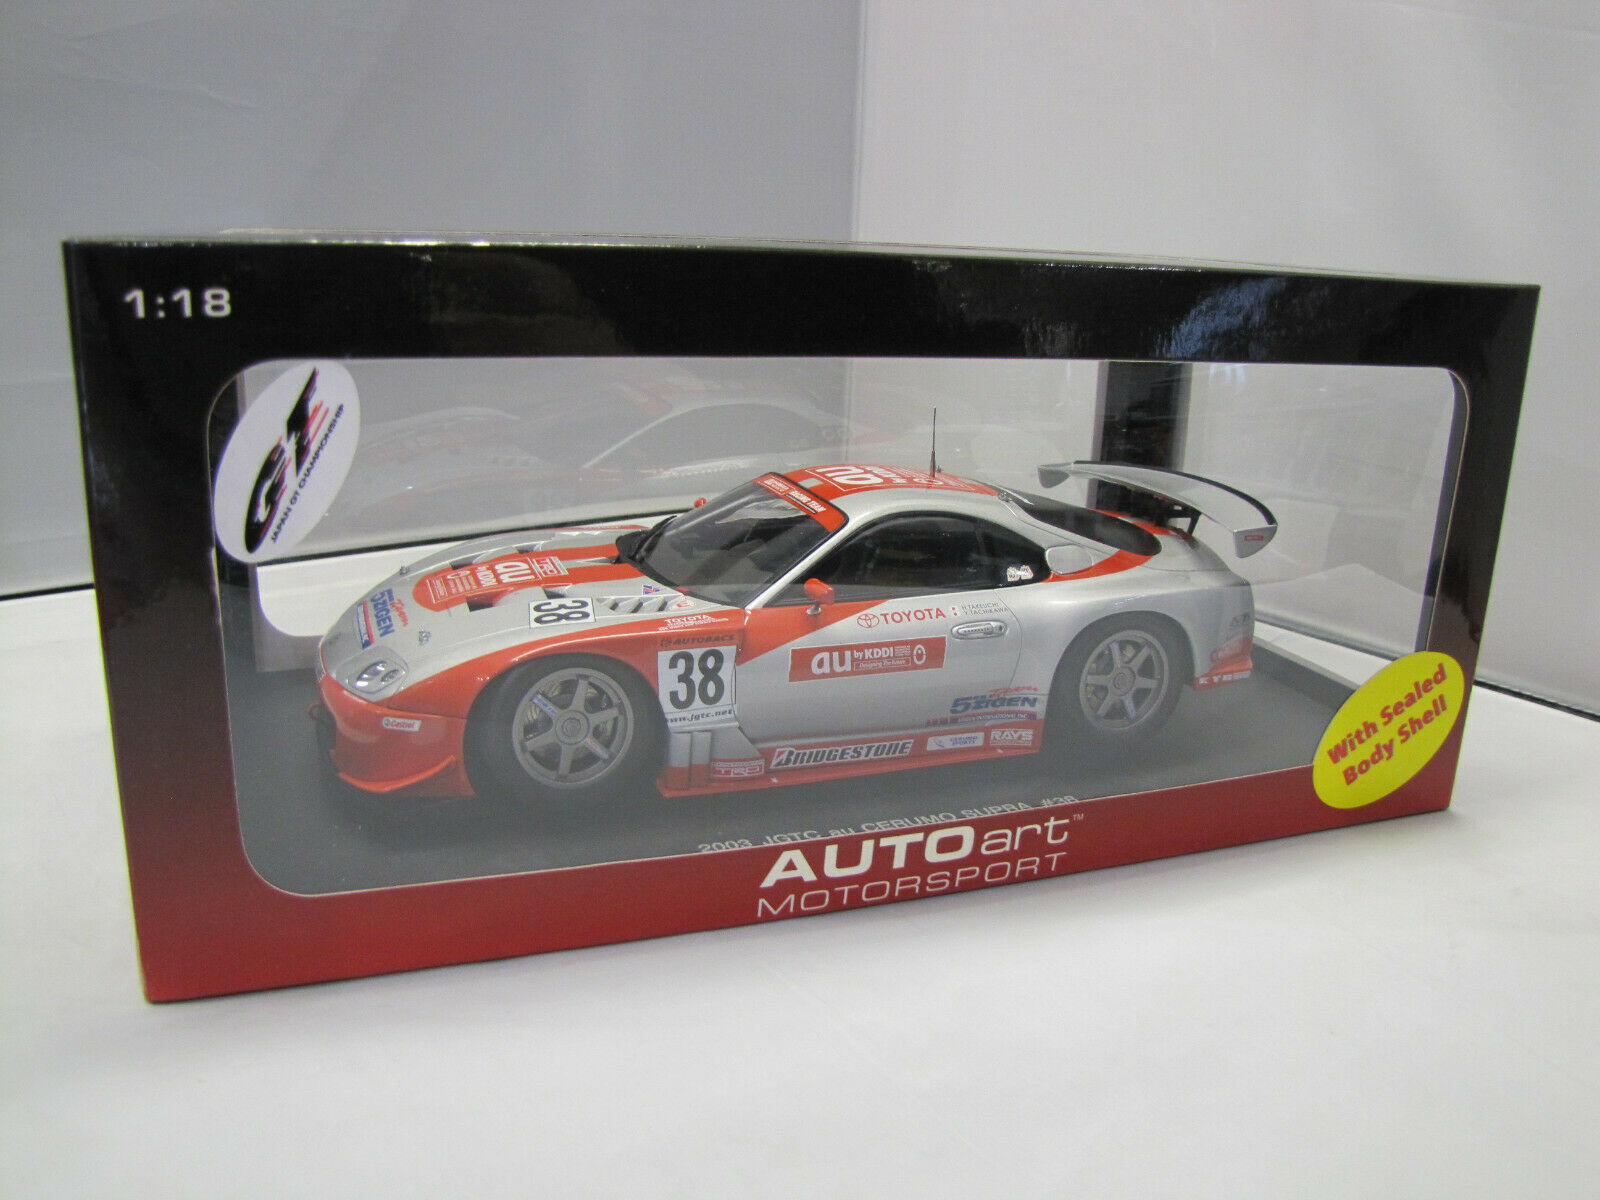 80317 Autoart TOYOTA SUPRA JGTC 2003 au CERUMO n. 38 - 1:18